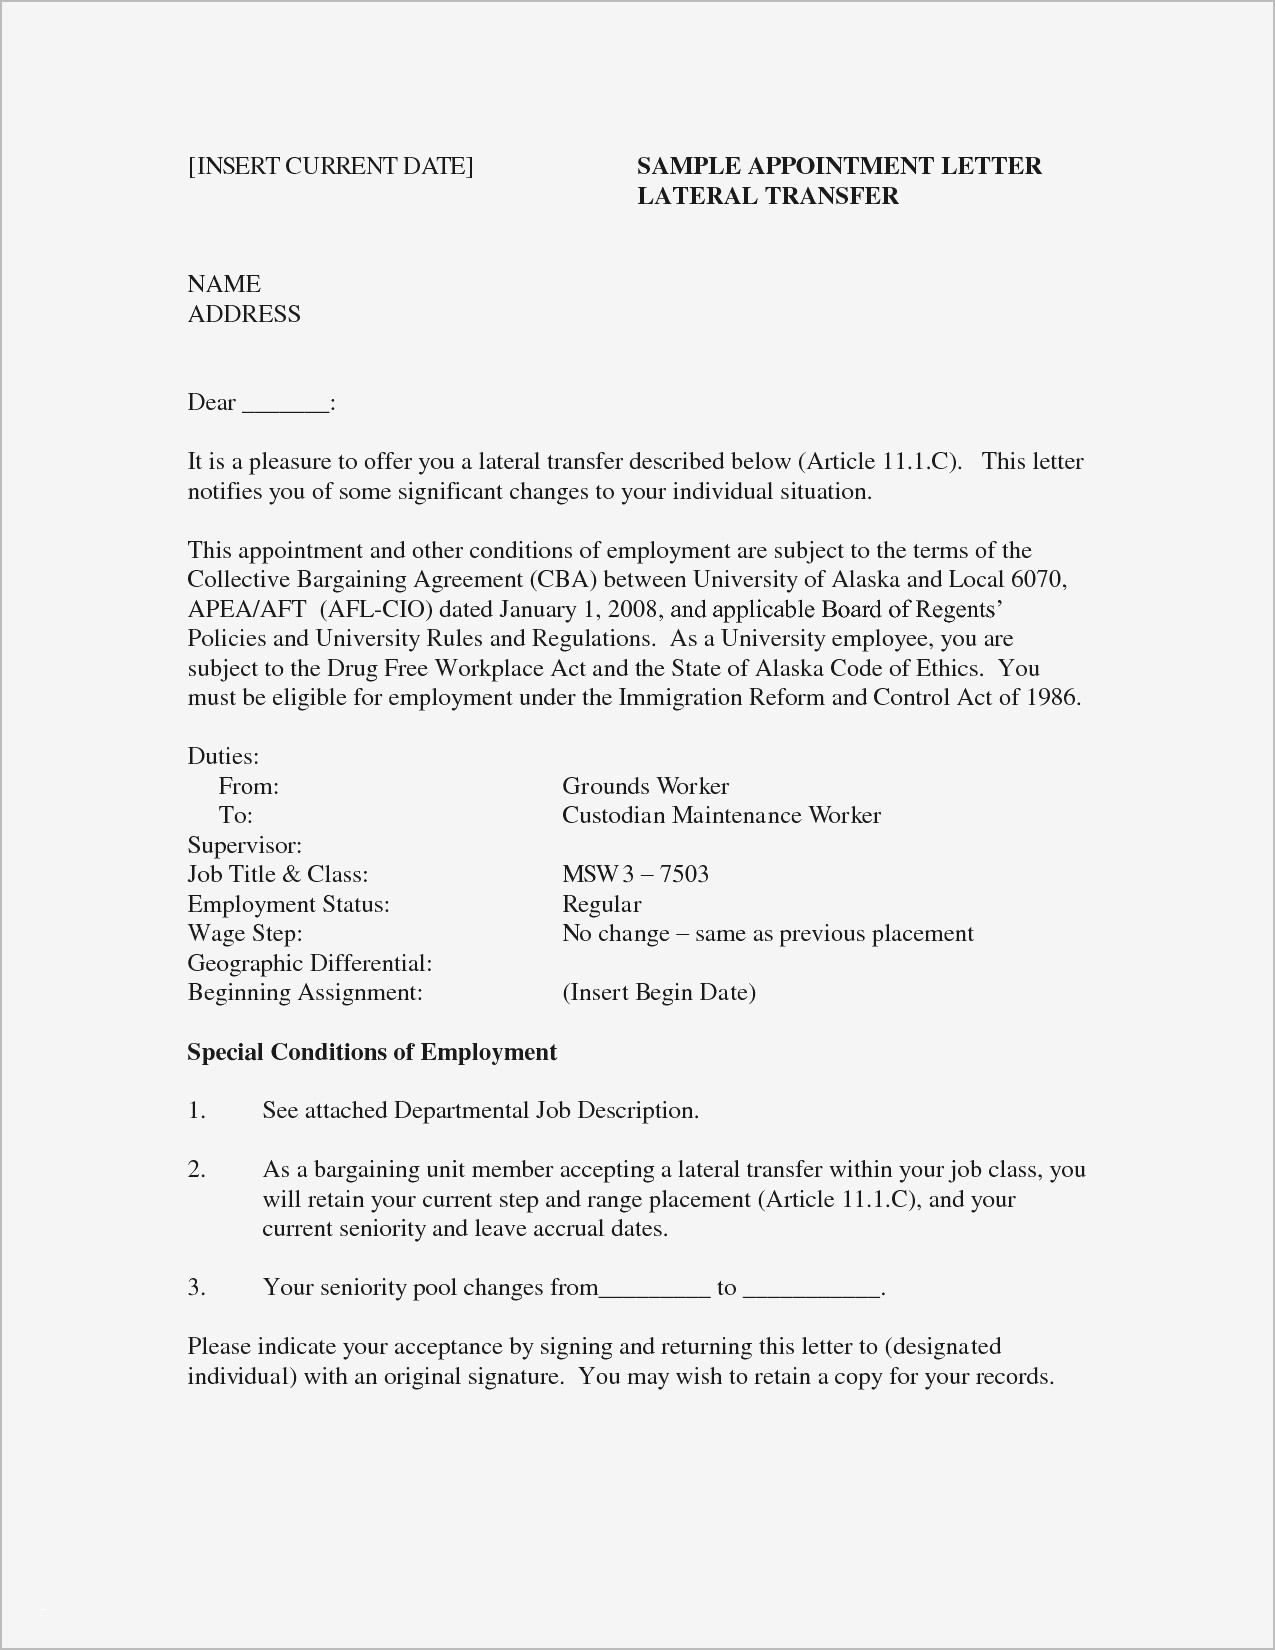 Professional Summary Resume Examples - Resume Professional Summary Examples Fresh Lovely Good Summary for